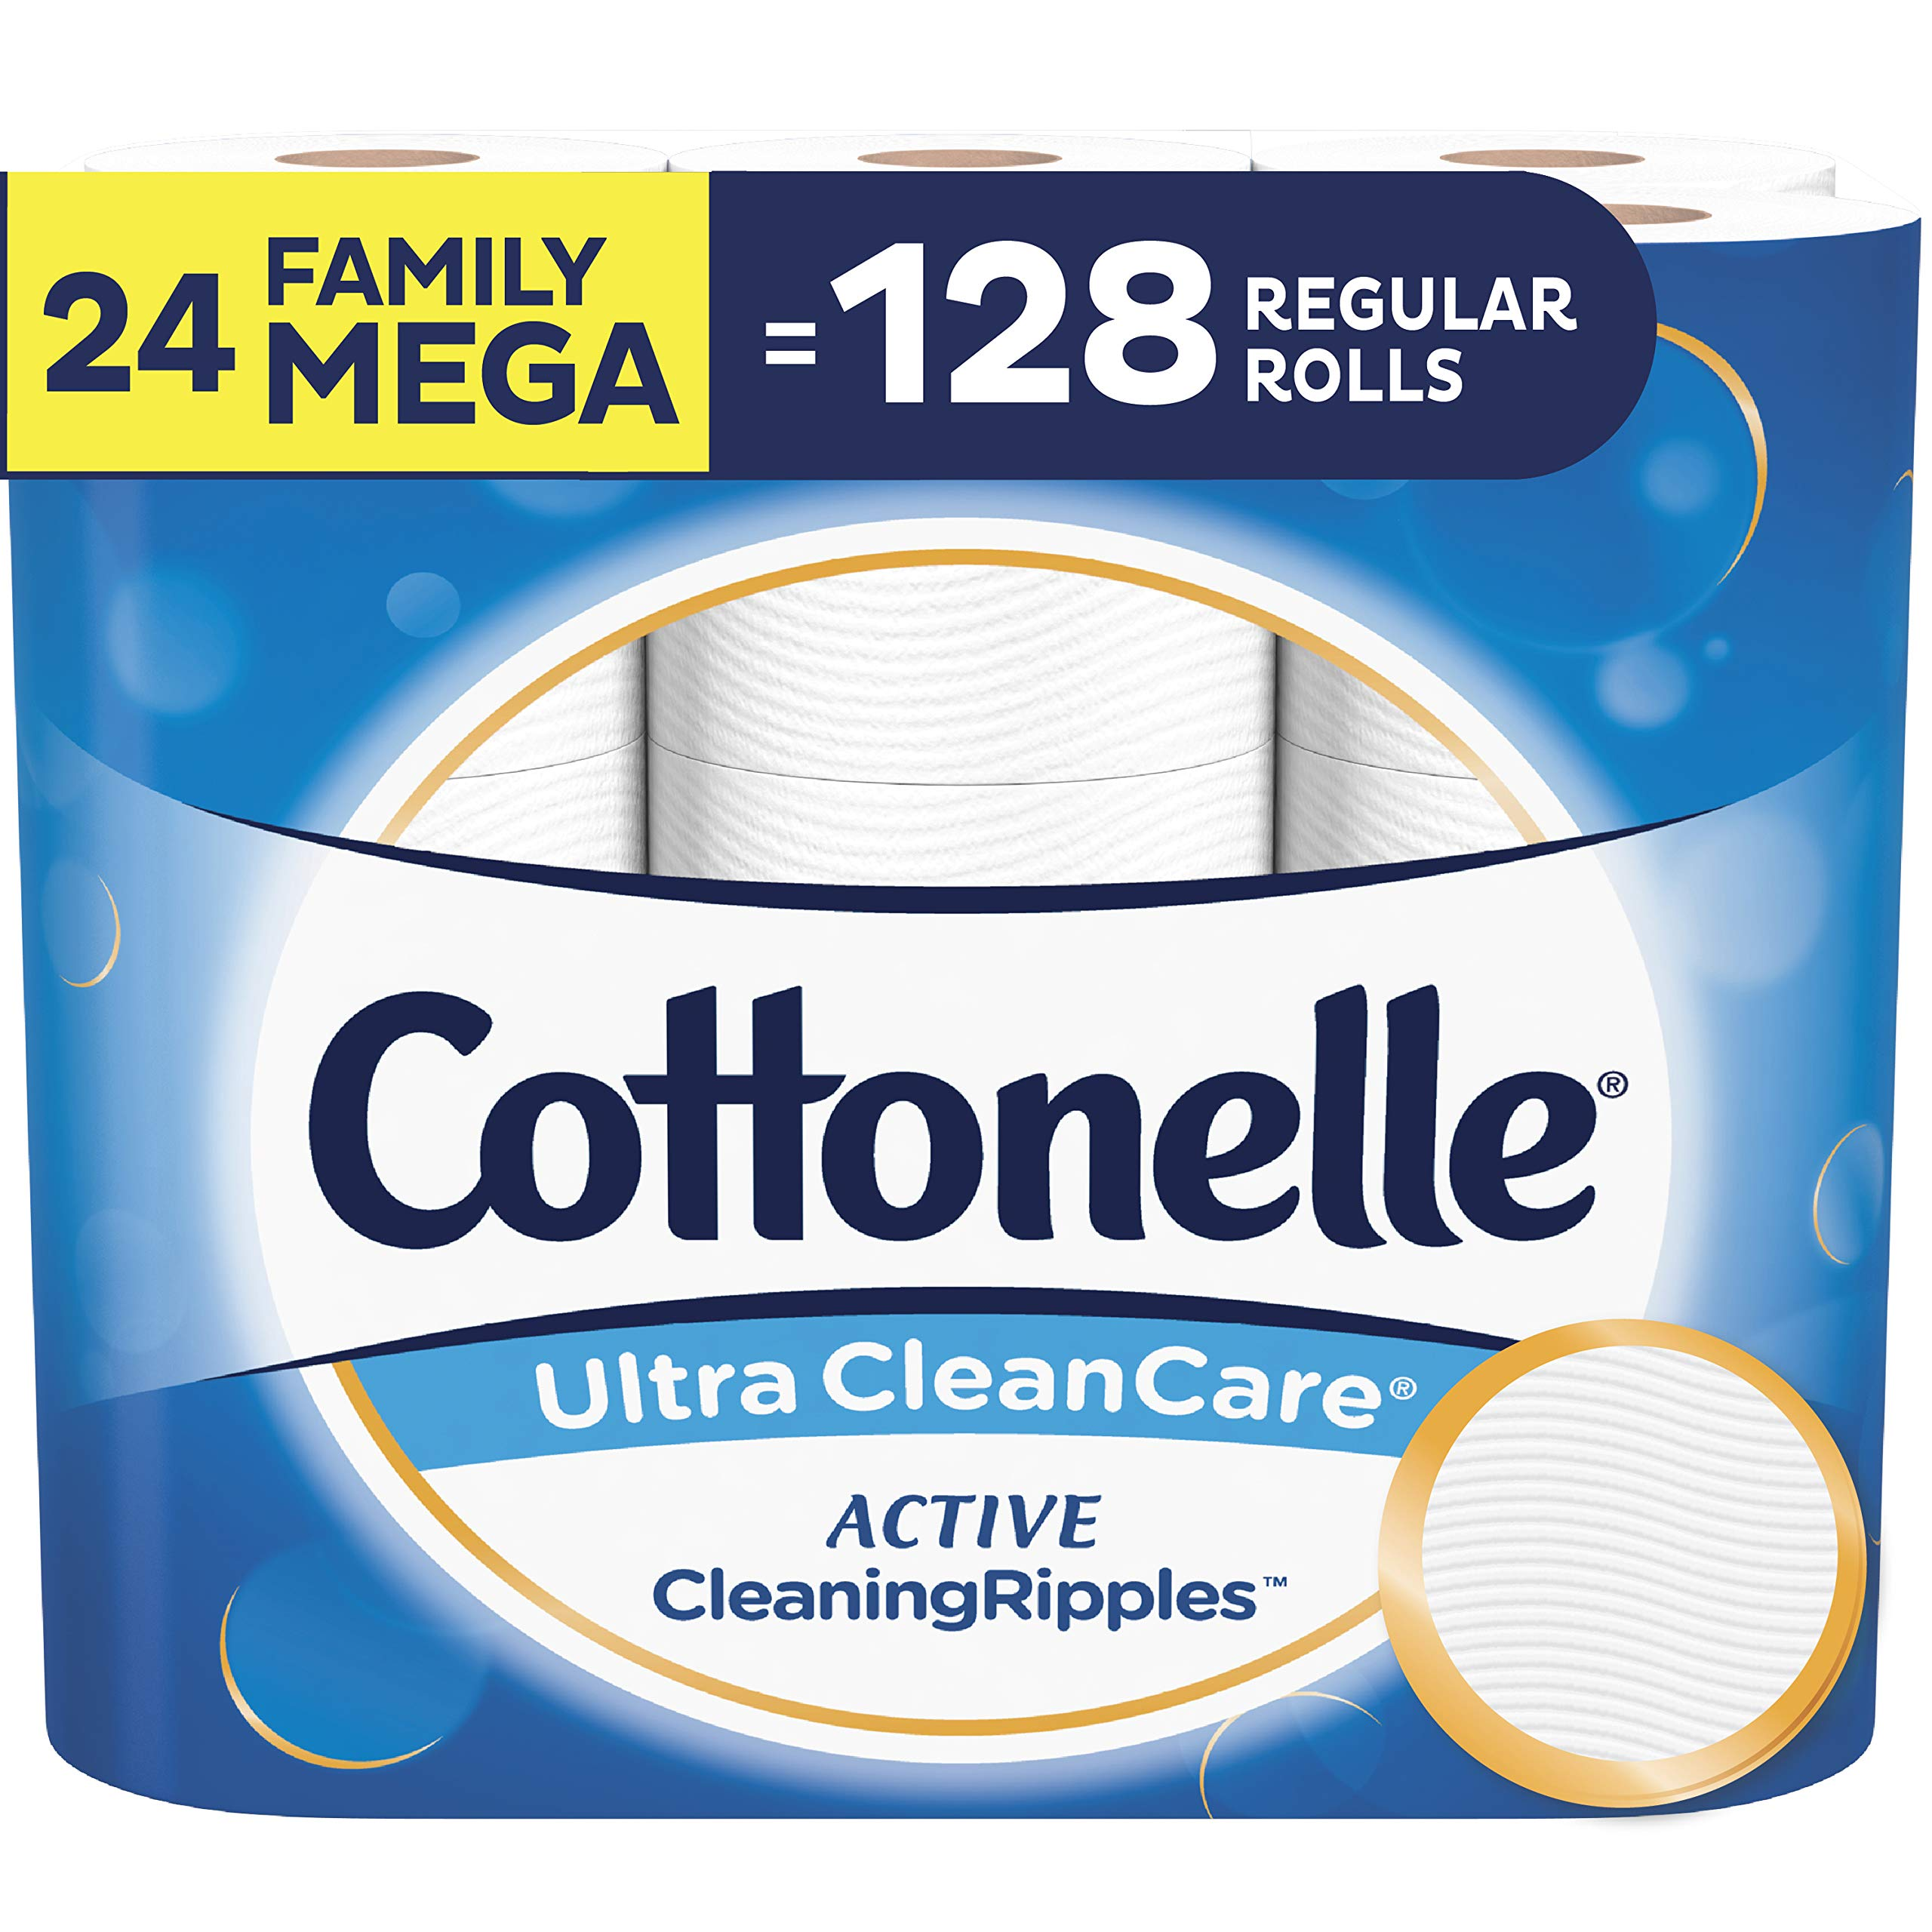 Cottonelle Ultra CleanCare Toilet Paper with Active CleaningRipples, Strong Biodegradable Bath Tissue, Septic-Safe, 24 Family Mega Rolls by Cottonelle (Image #1)